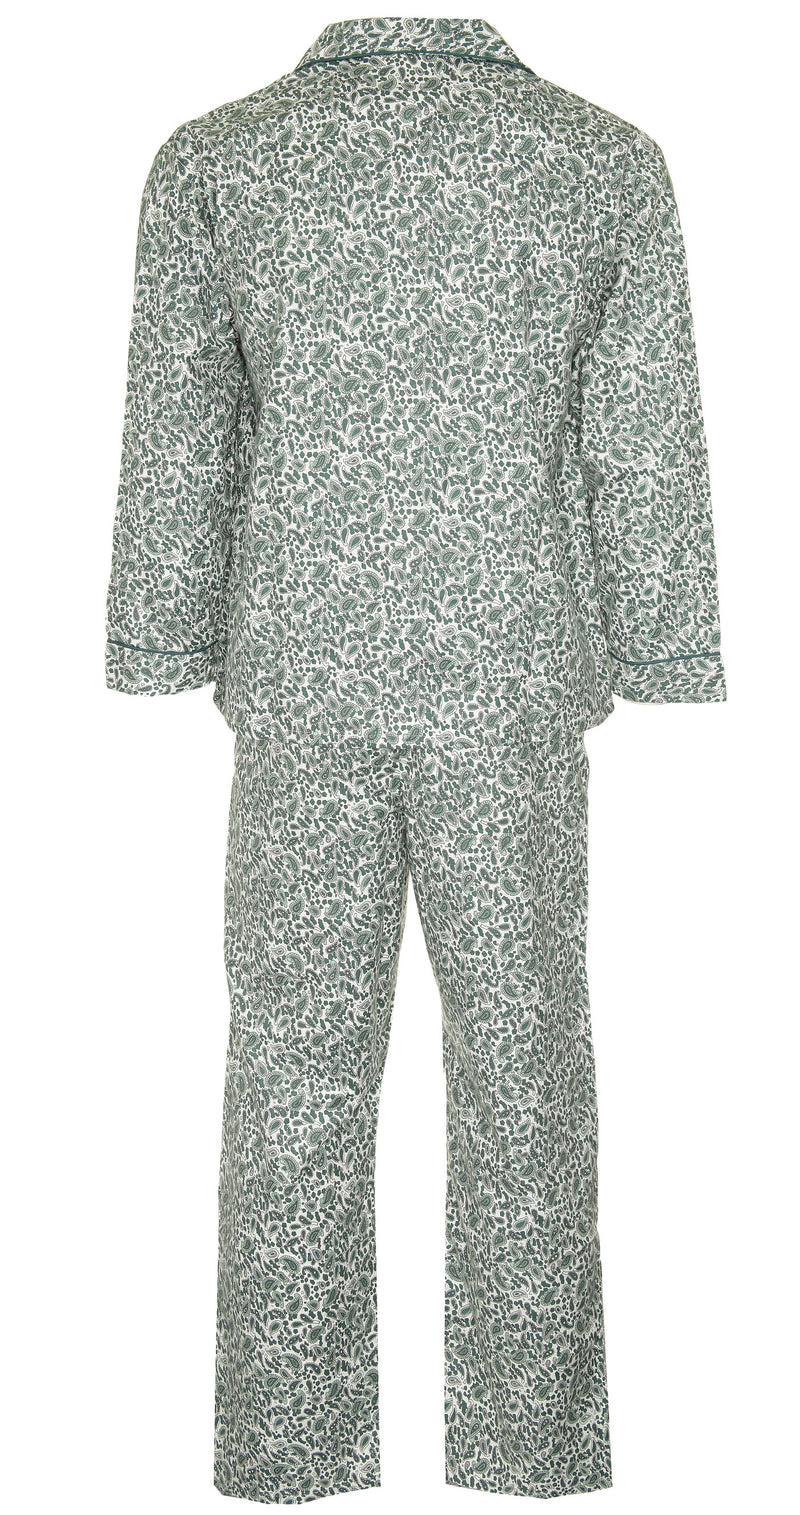 green back Champion Paisley Pyjamas 100% Cotton